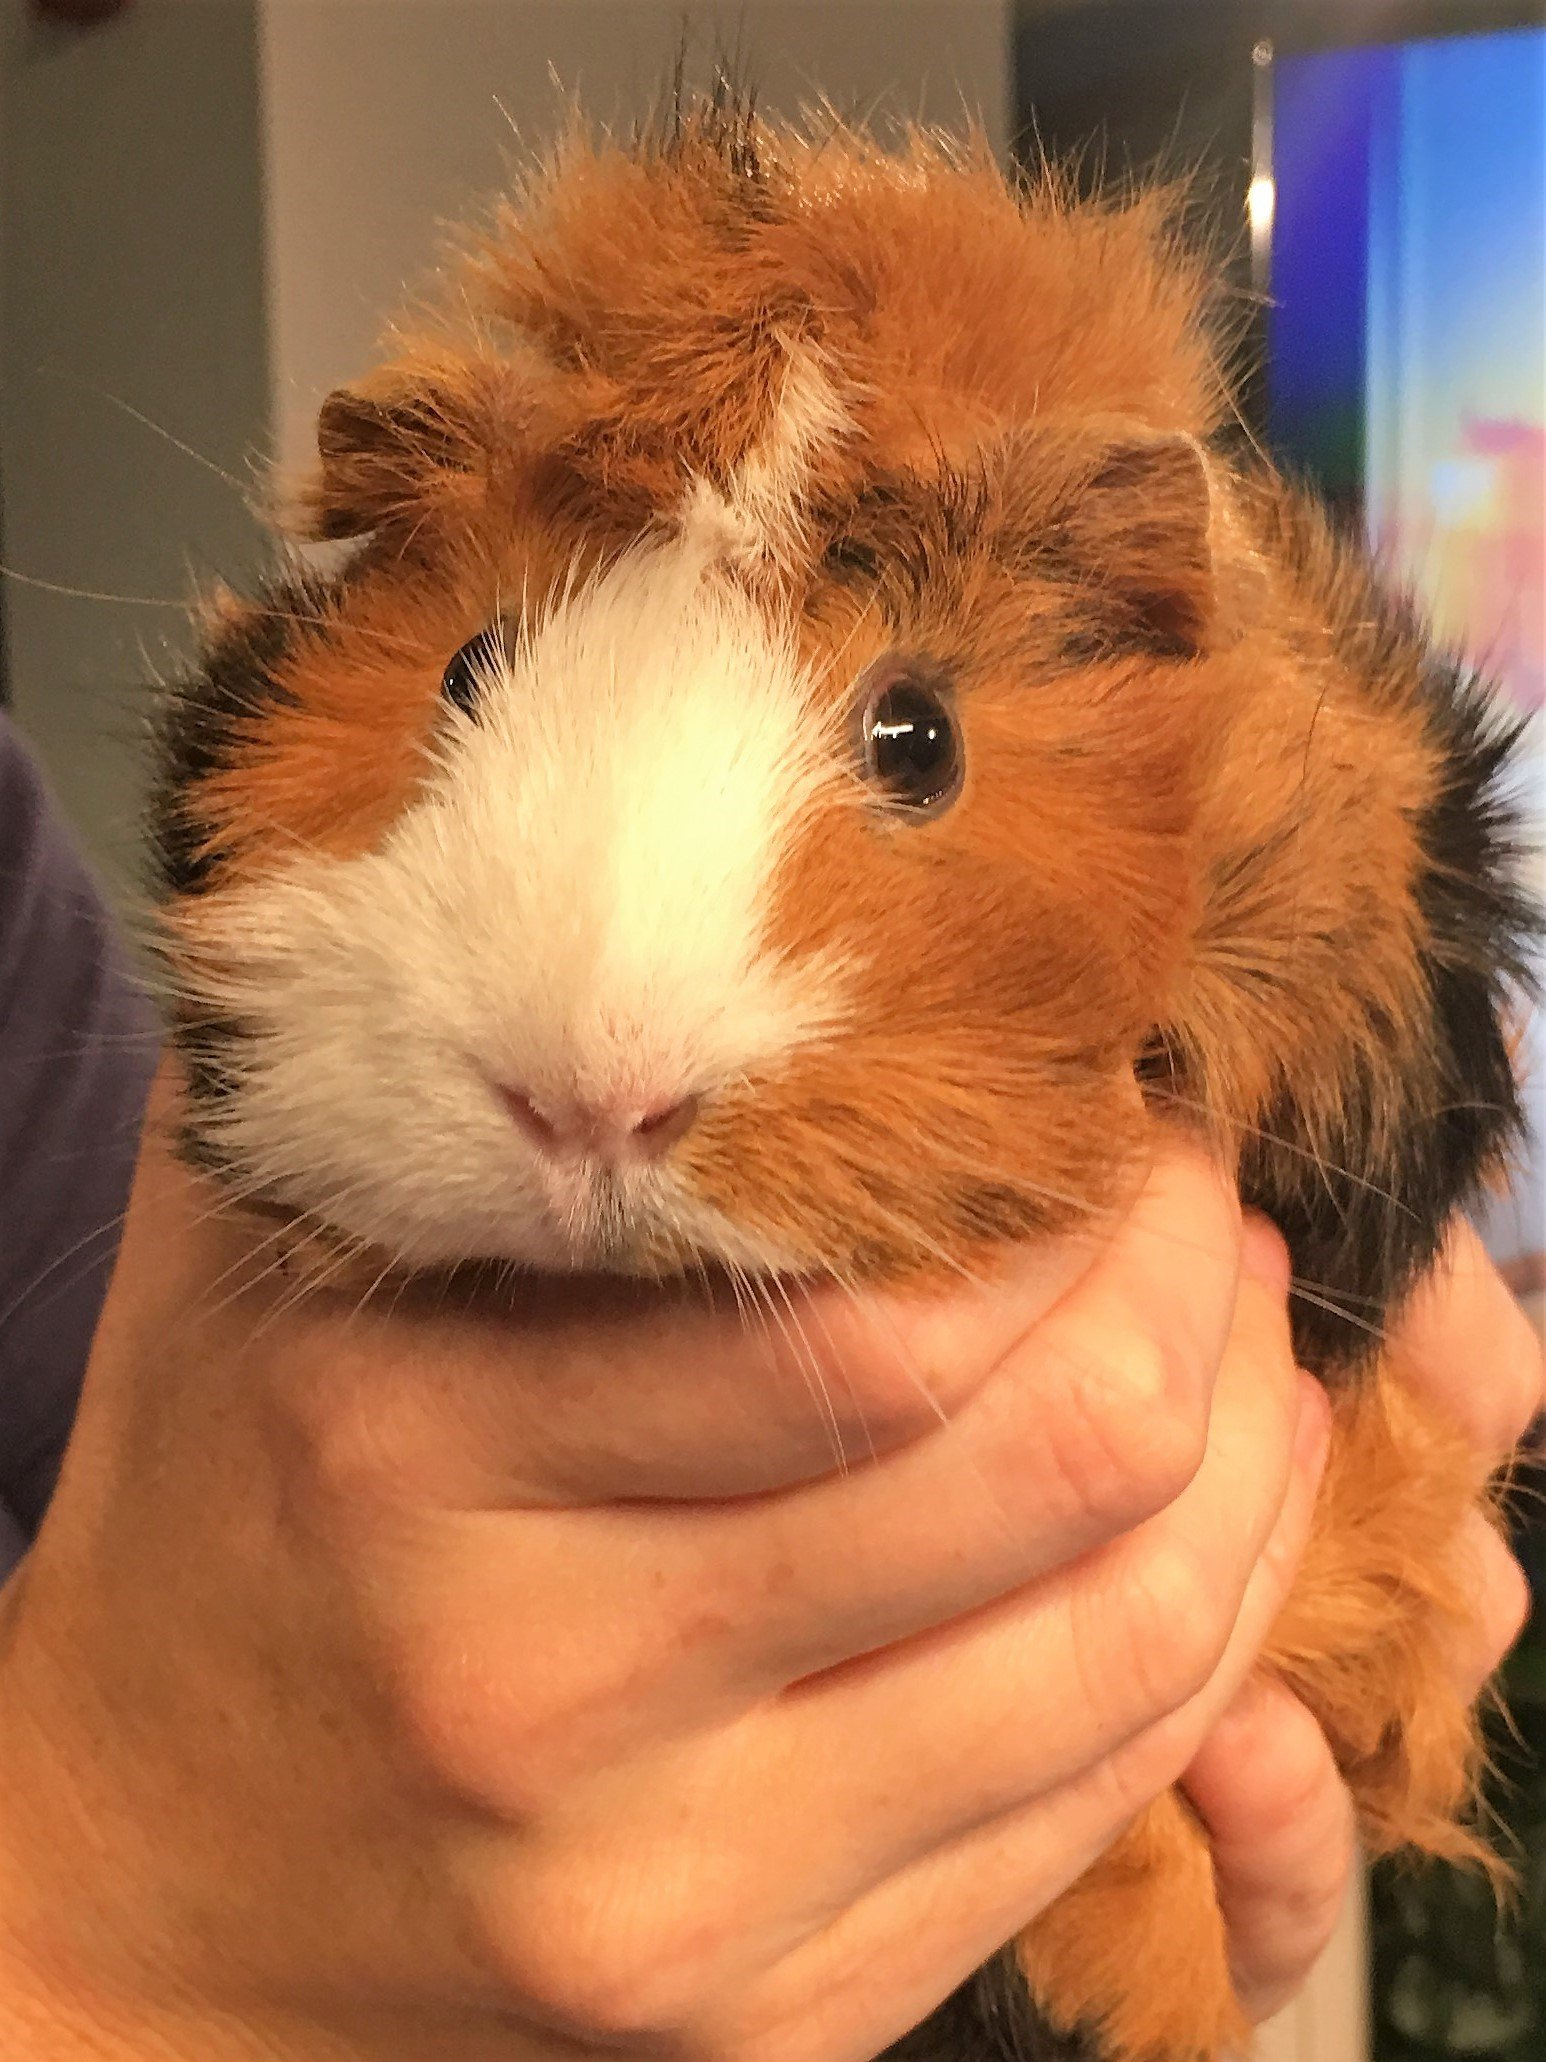 Squeaky the Guinea Pig visits GMAZ